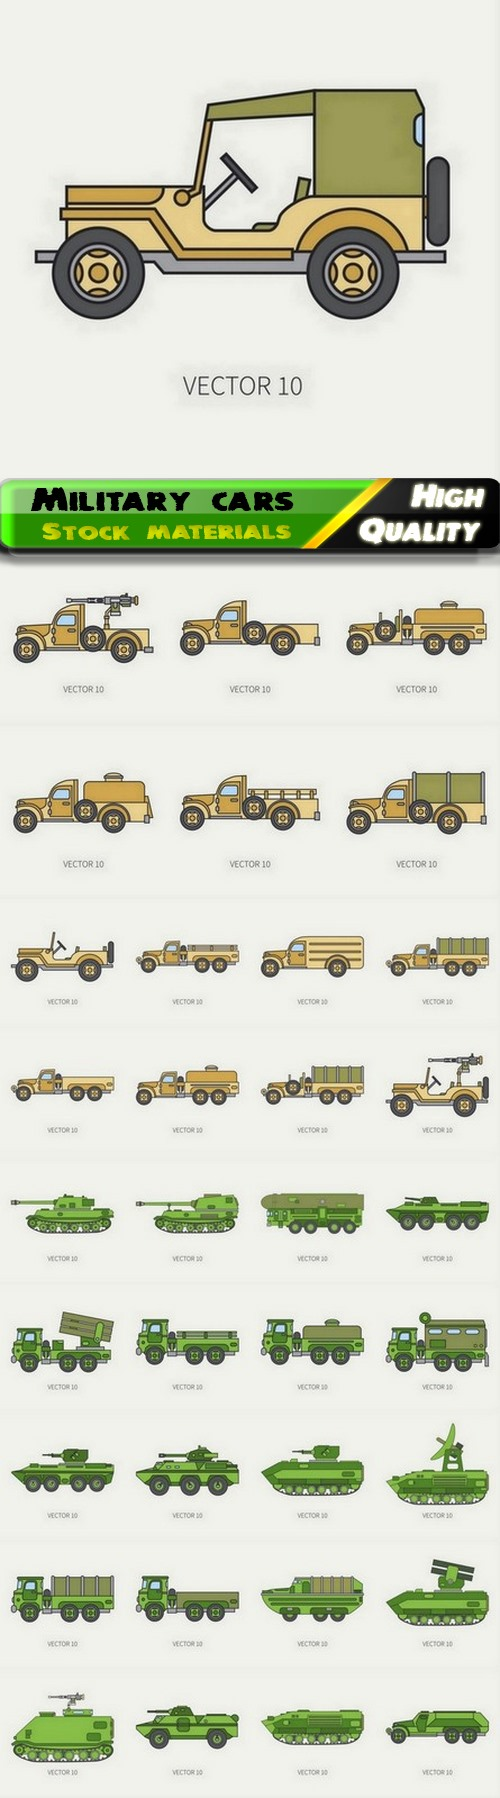 Military fighting vehicle and army truck tank car for soldiers 35 Eps